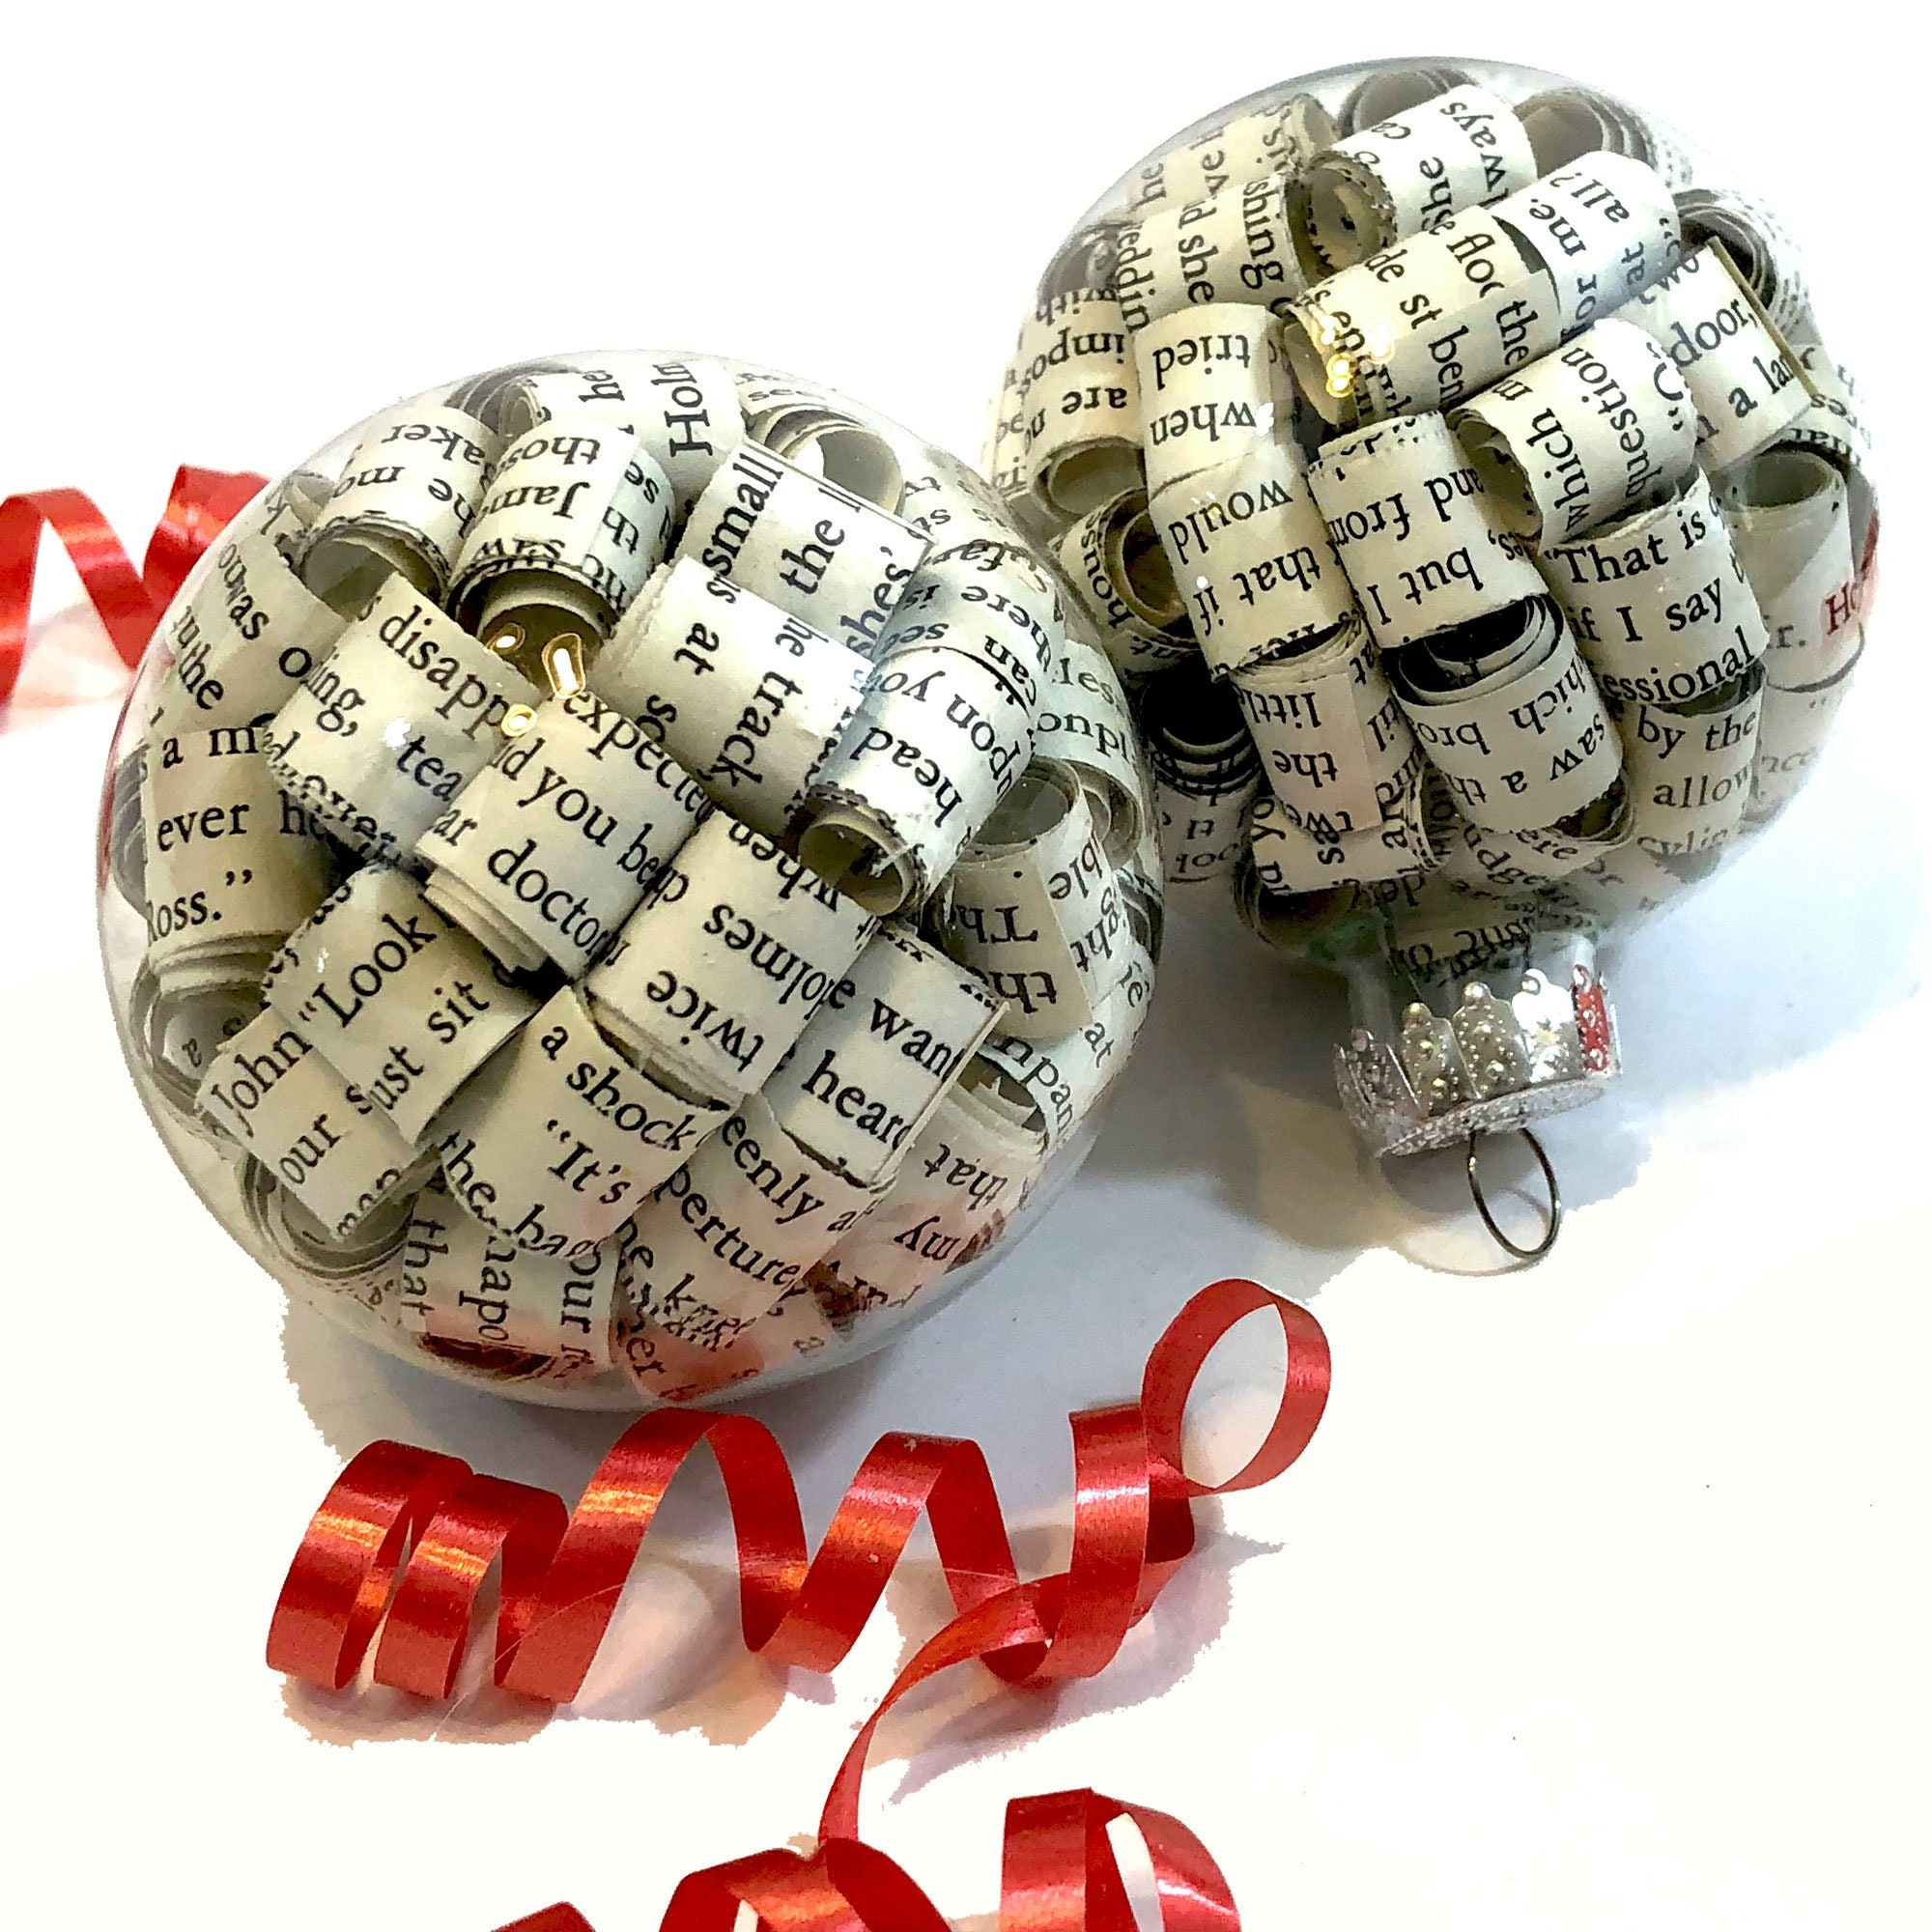 Sherlock Holmes Glass Ball Book Page Ornaments made from